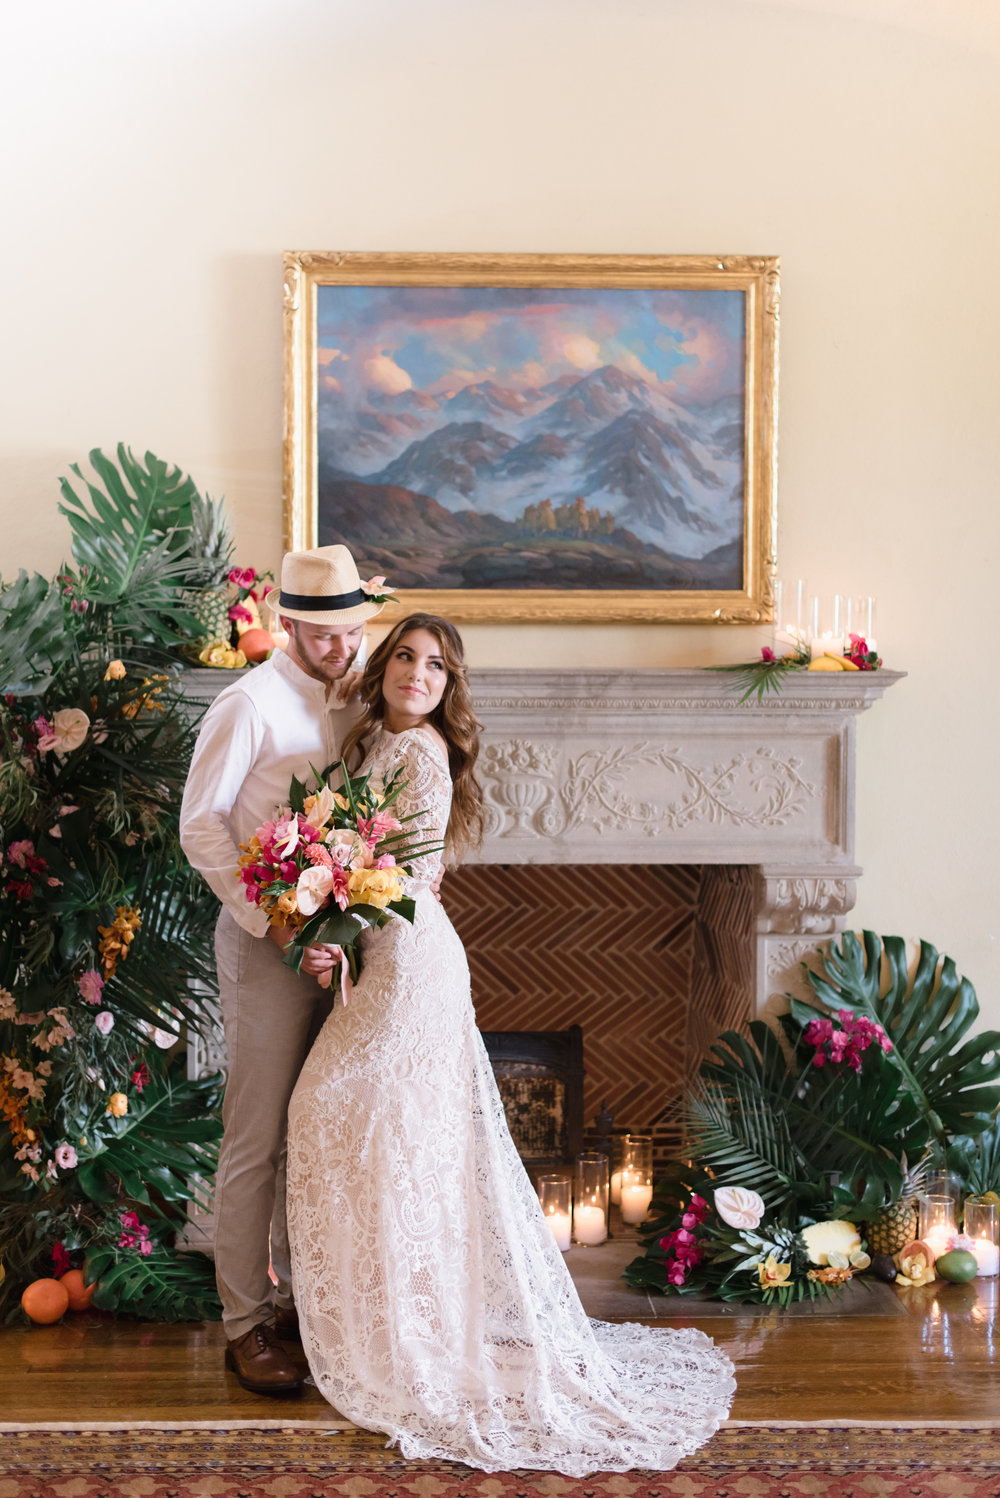 ceremony florals for a fireplace ceremony.jpg